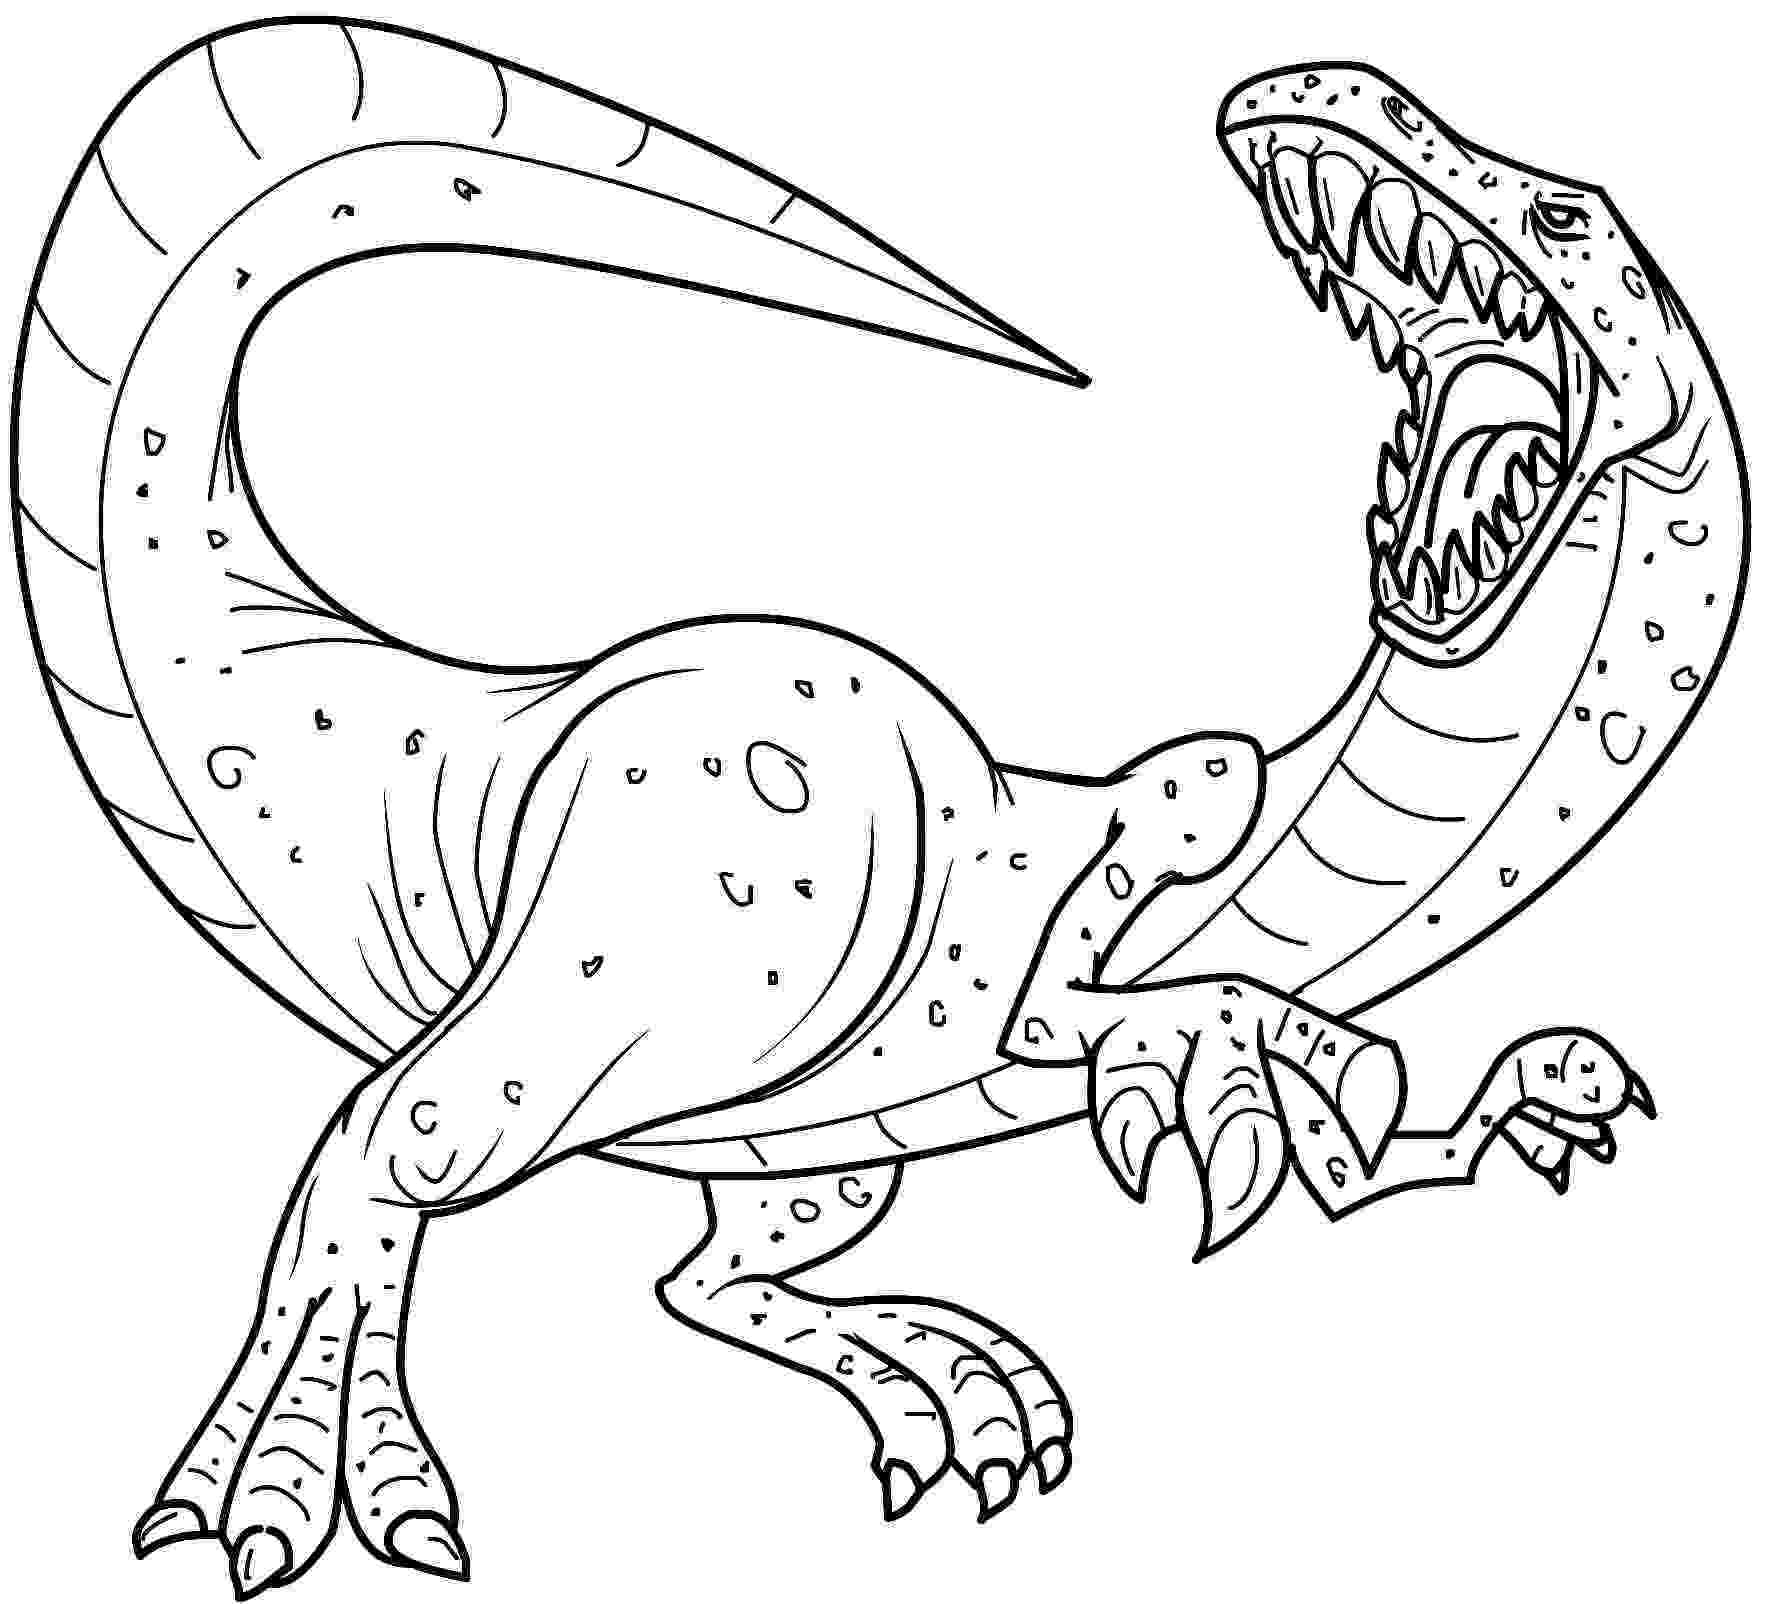 colouring dinosaur dinosaur coloring pages coloring pages to print colouring dinosaur